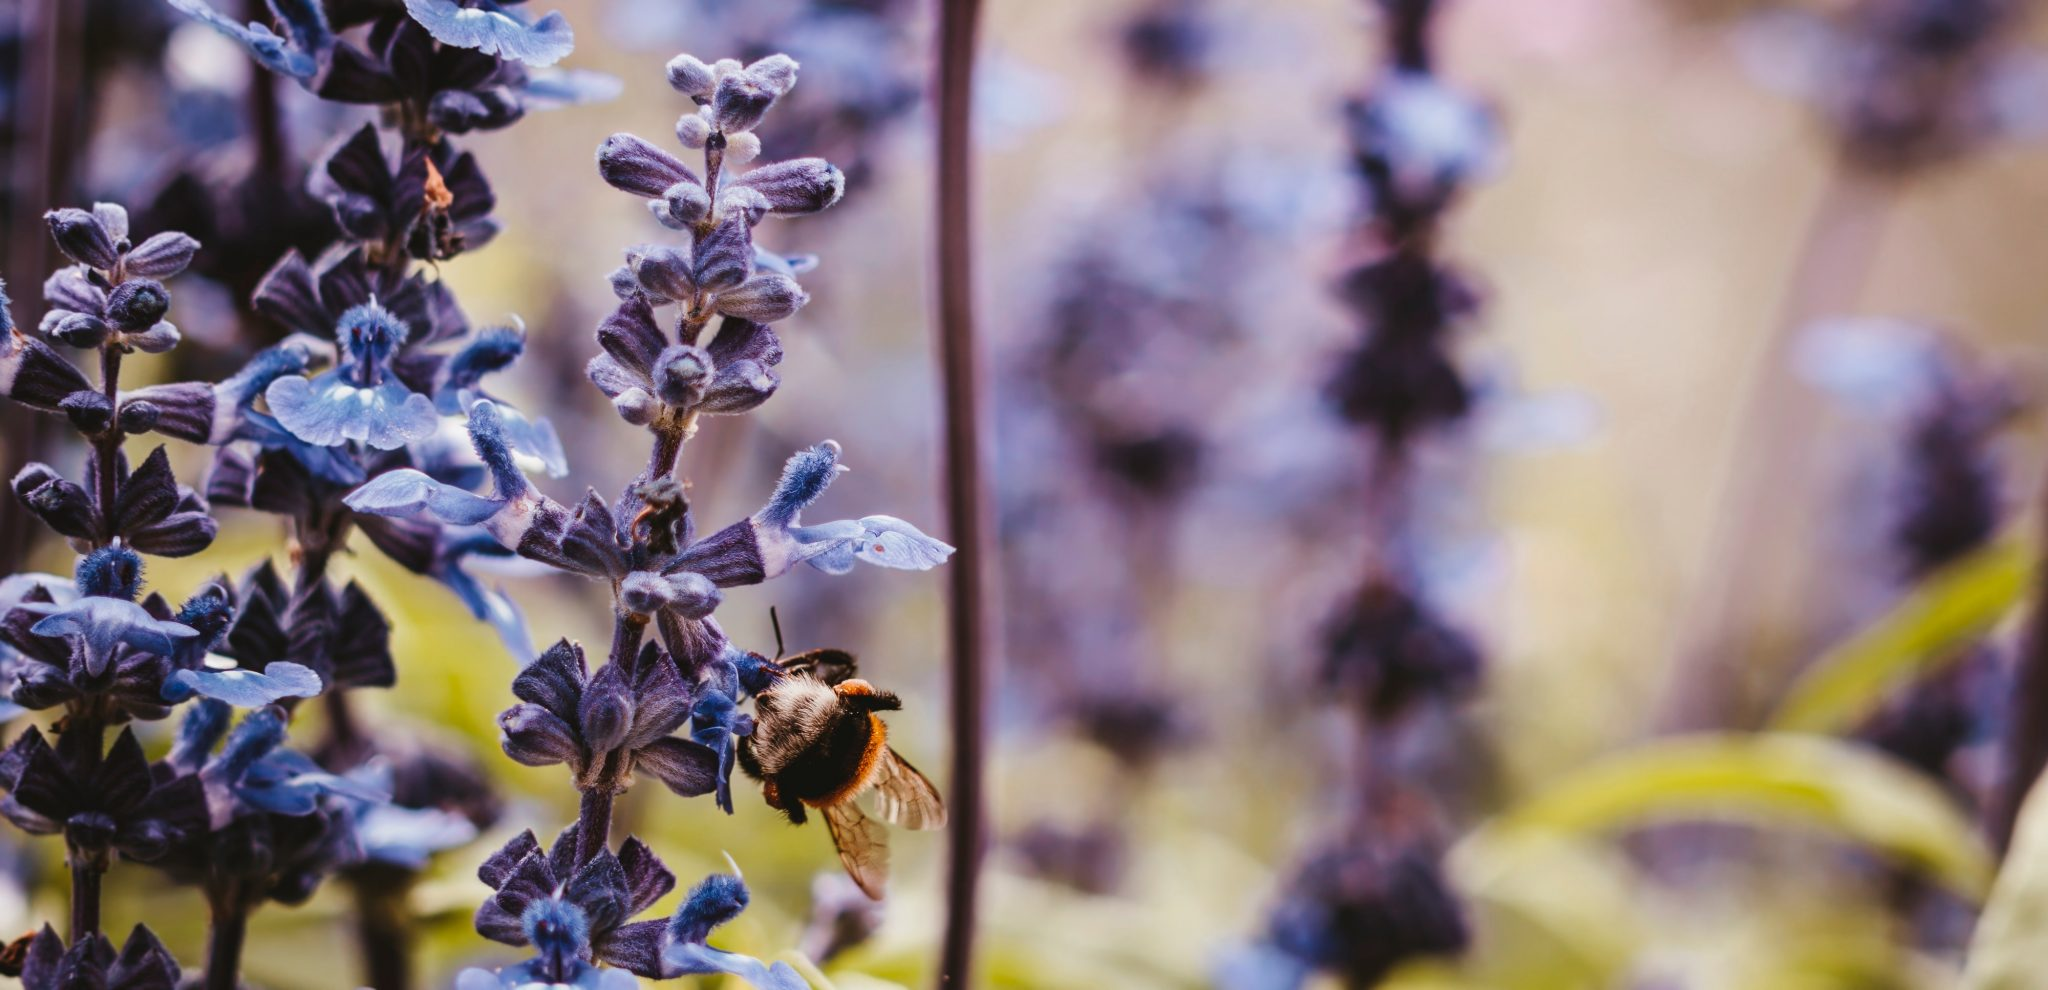 How You Can Help Save the Humble Bumblebee